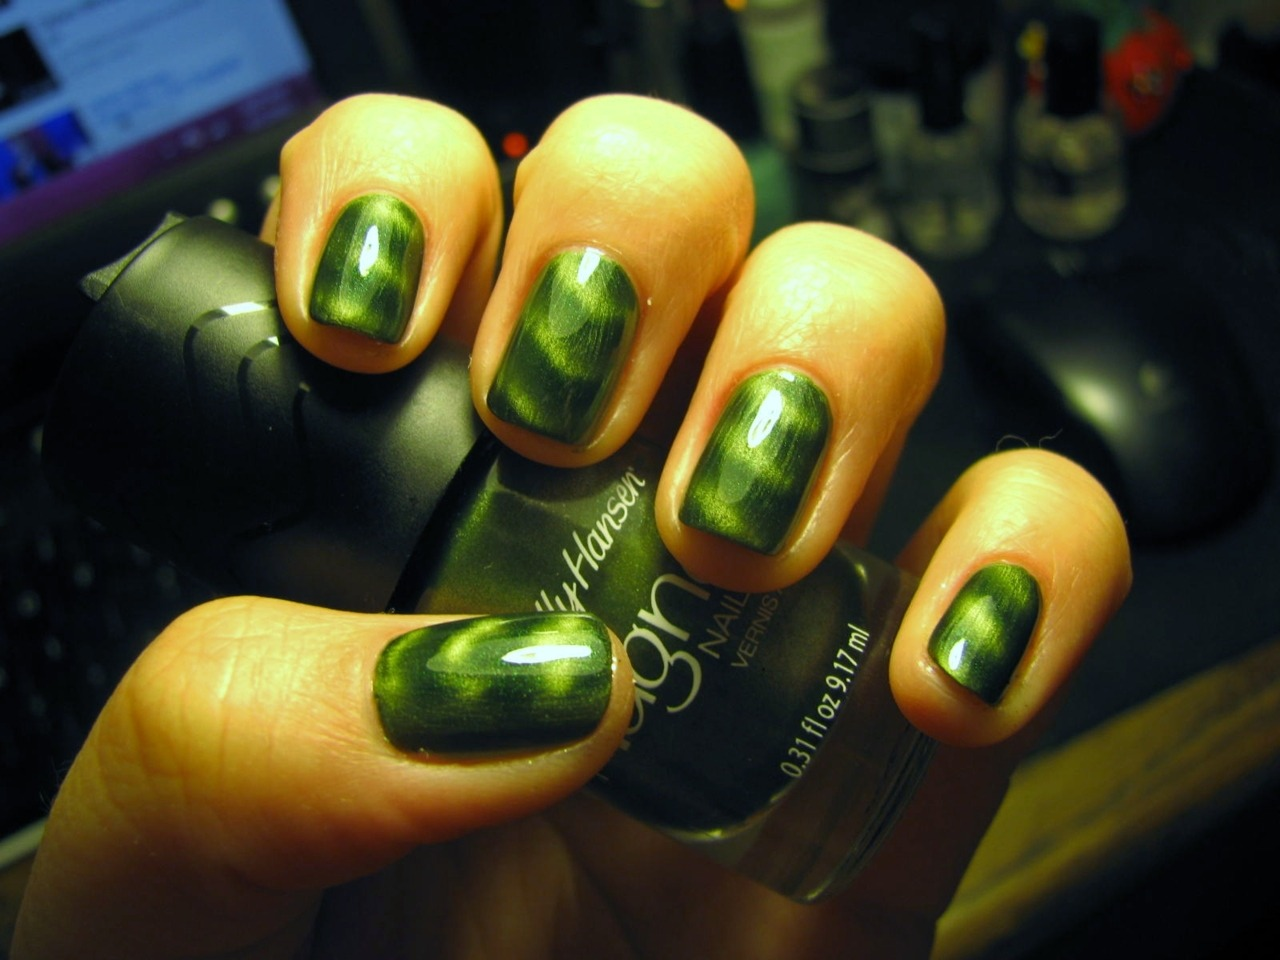 Sally Hansen Magnetic nail color in Electric Emerald. Applies really well and super easy to use.